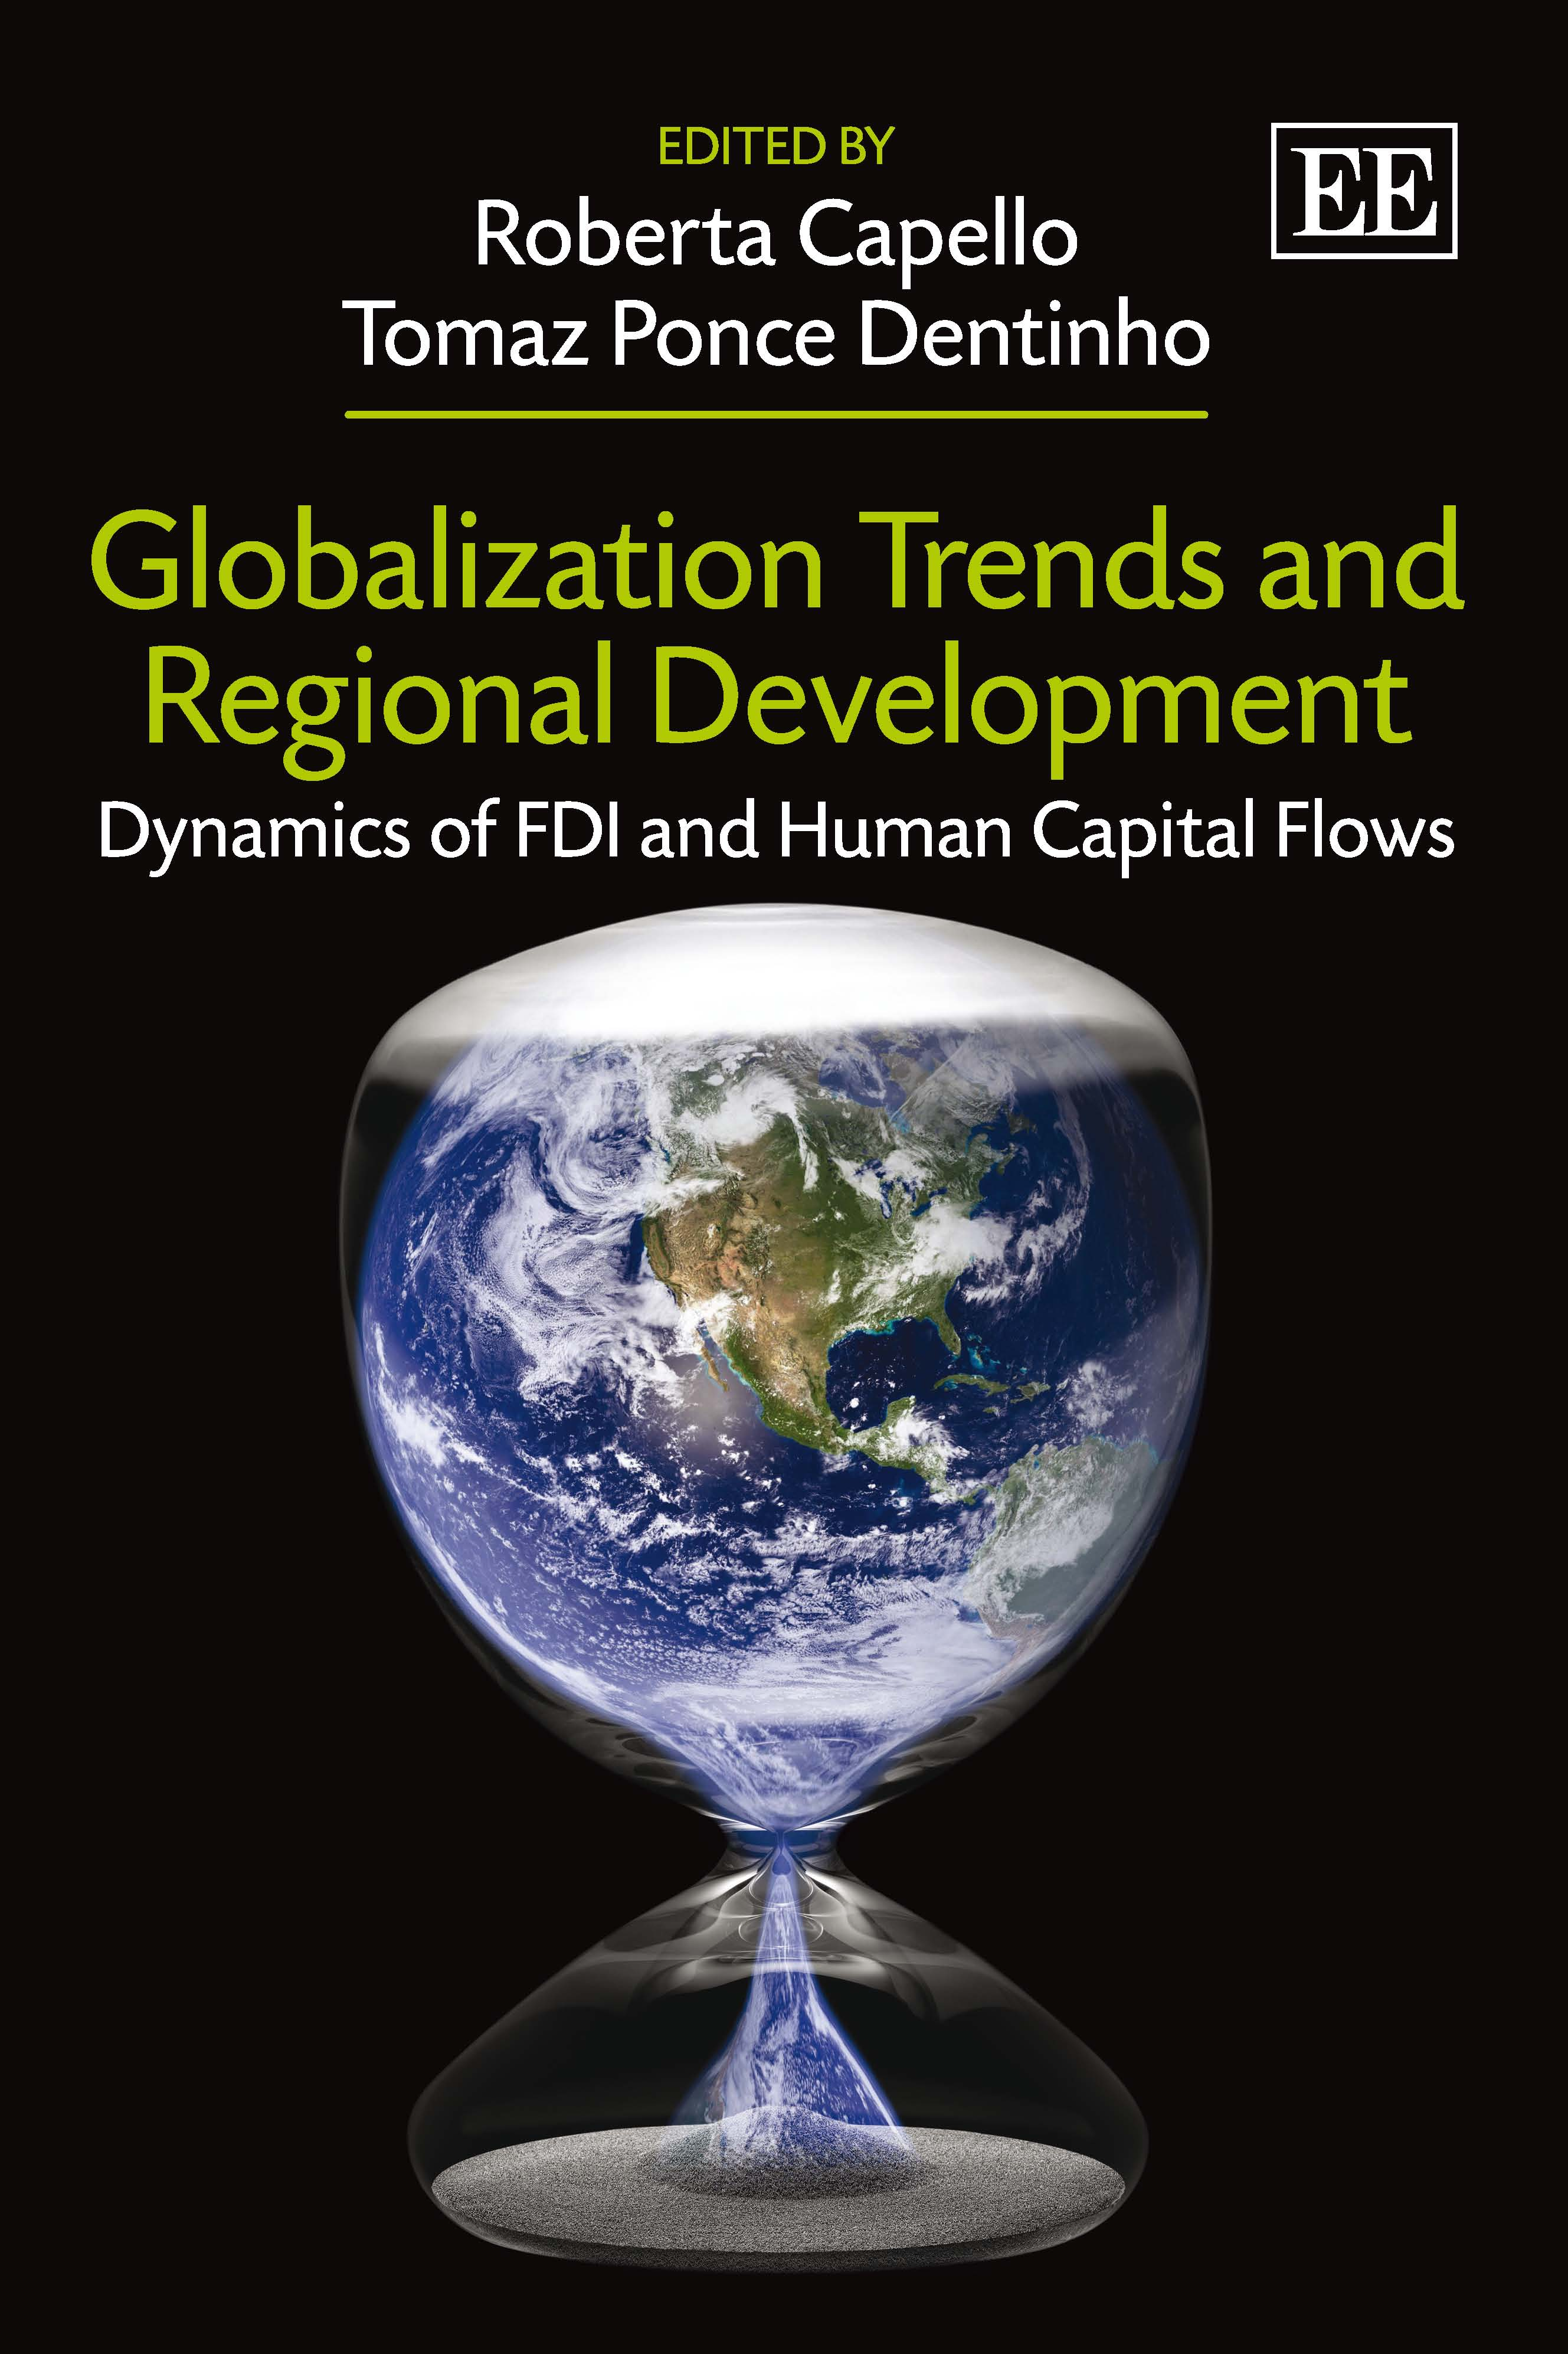 Globalization Trends and Regional Development